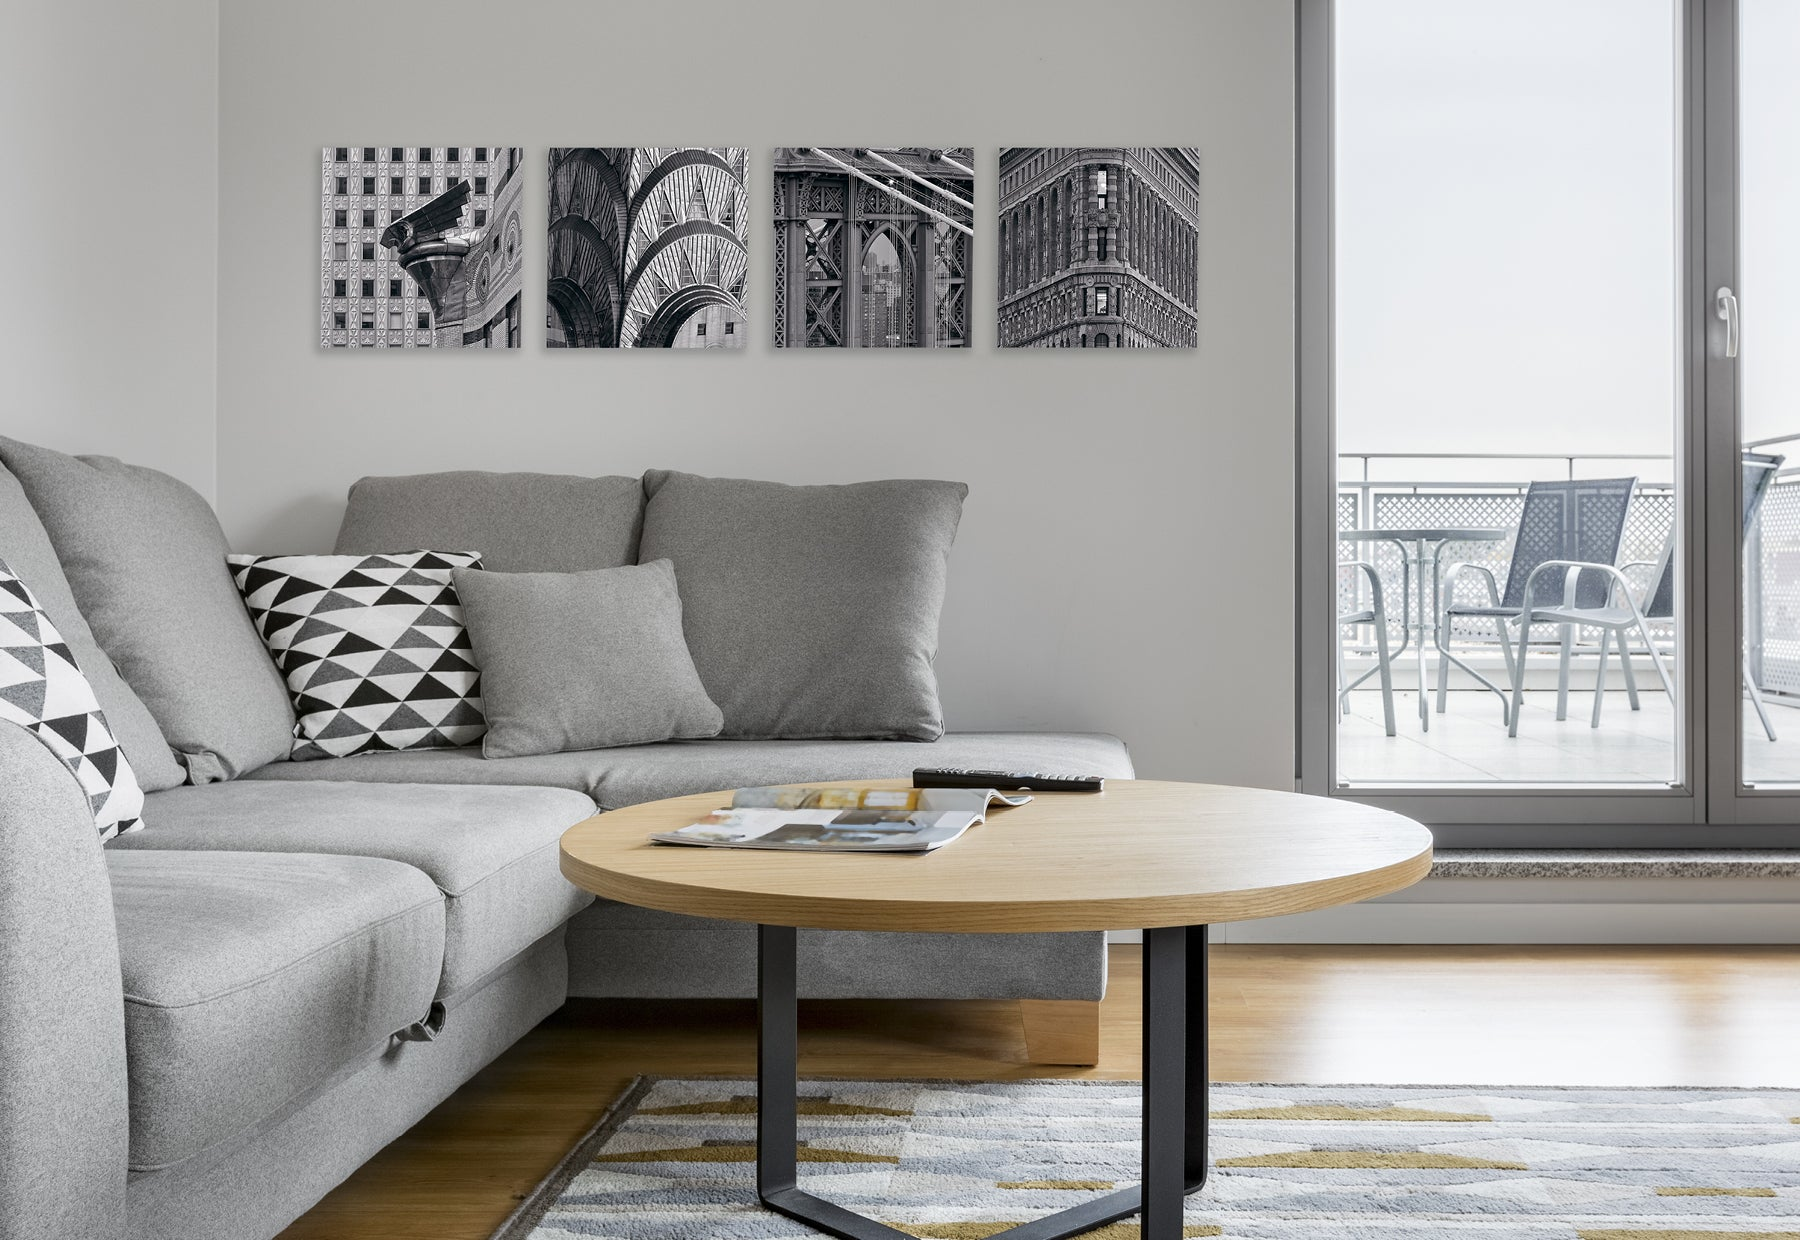 Living room with light gray couch and light brown coffee table featuring four square black and white photographs of iconic New York City landmarks by Peter Lik